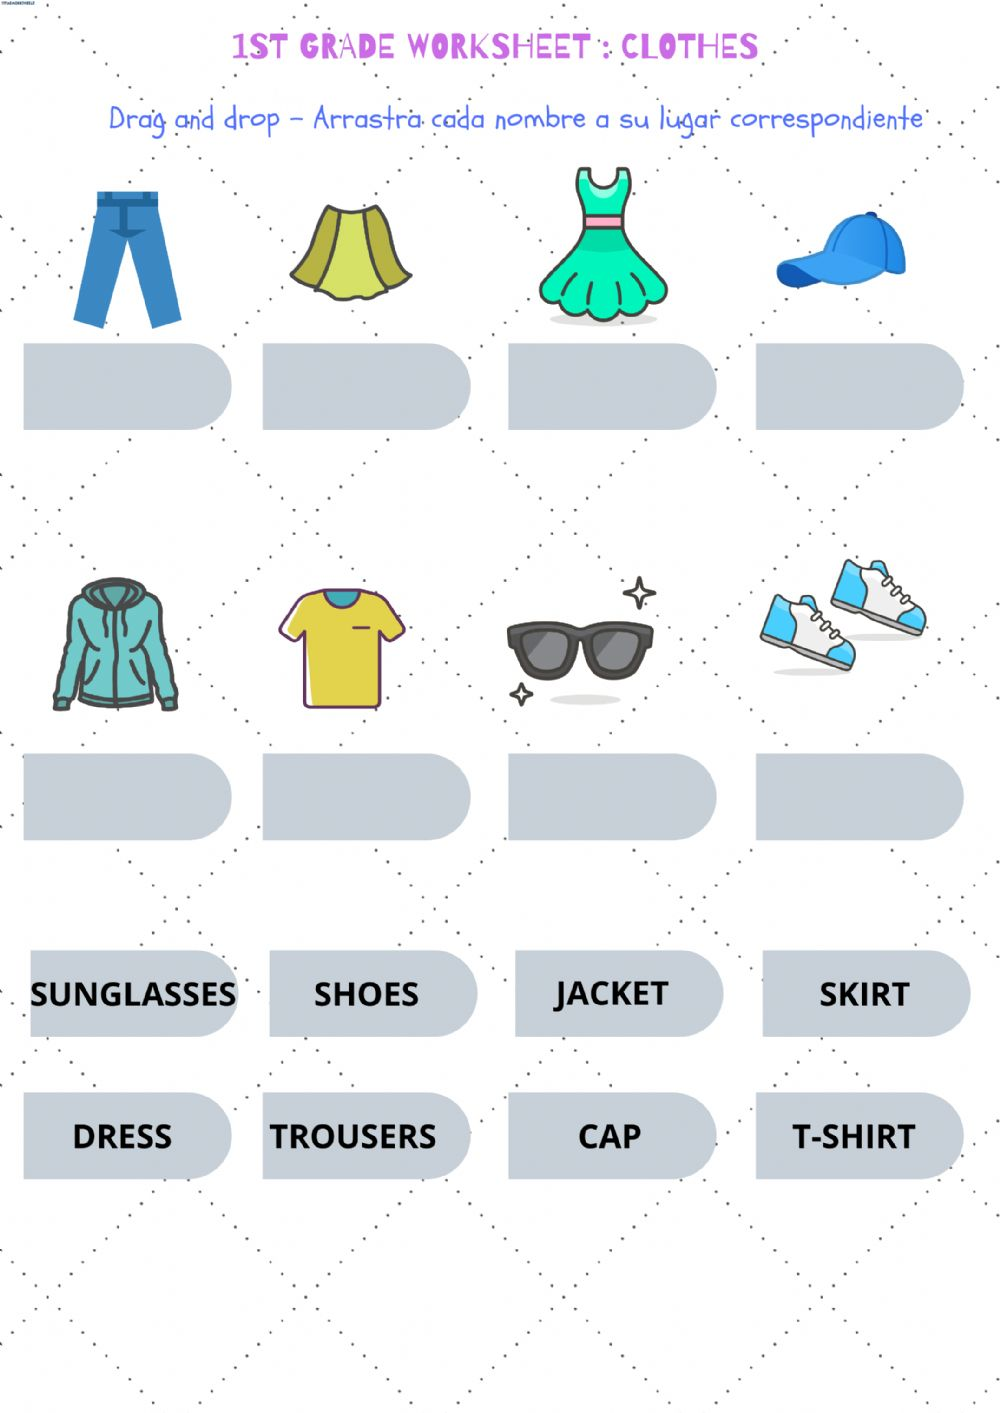 hight resolution of Drag and drop 1st grade-clothes worksheet